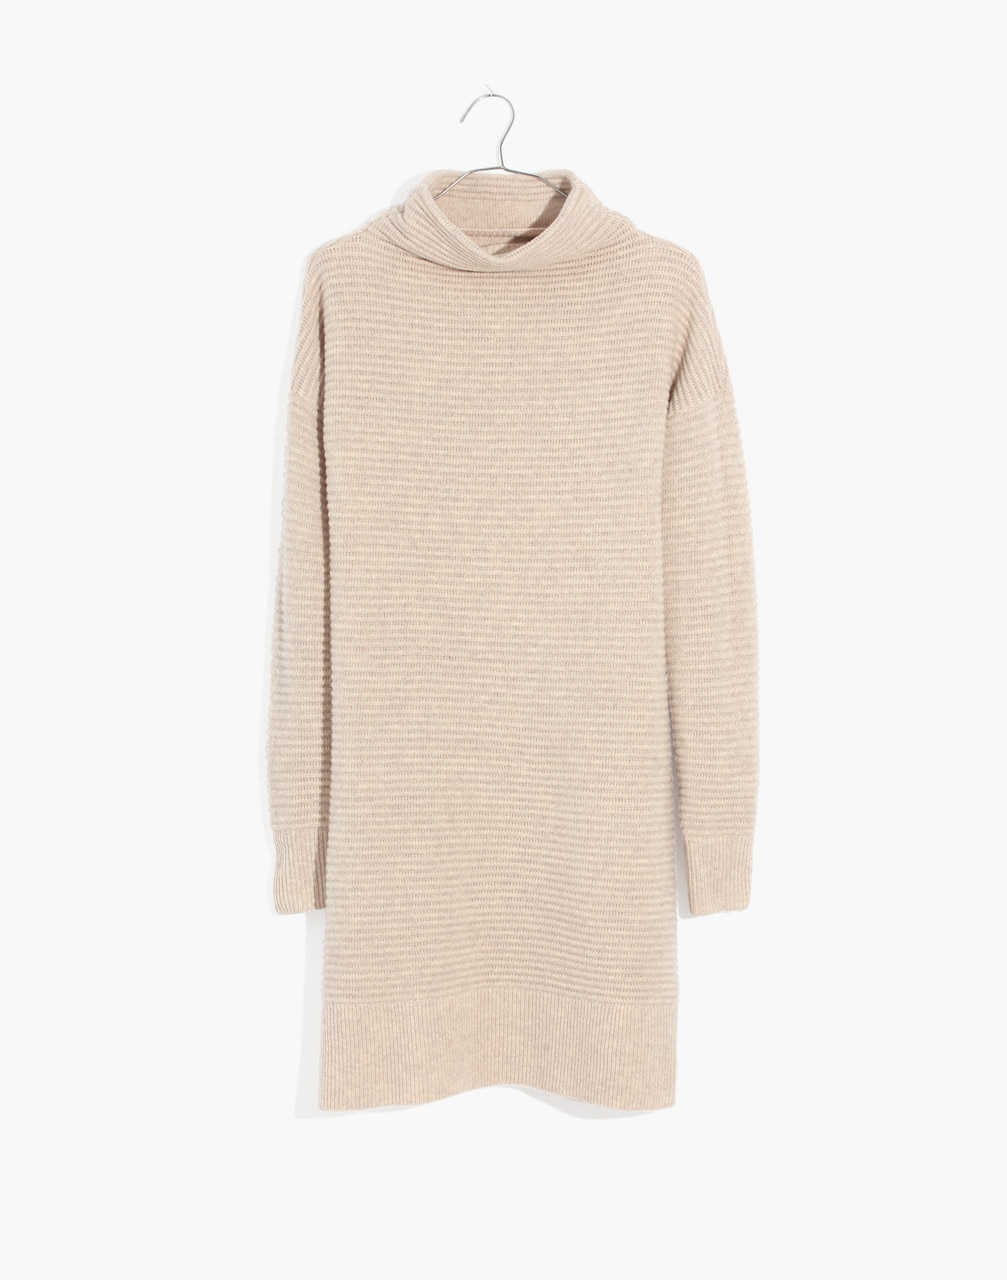 Skyscraper Sweater Dress - Madewell